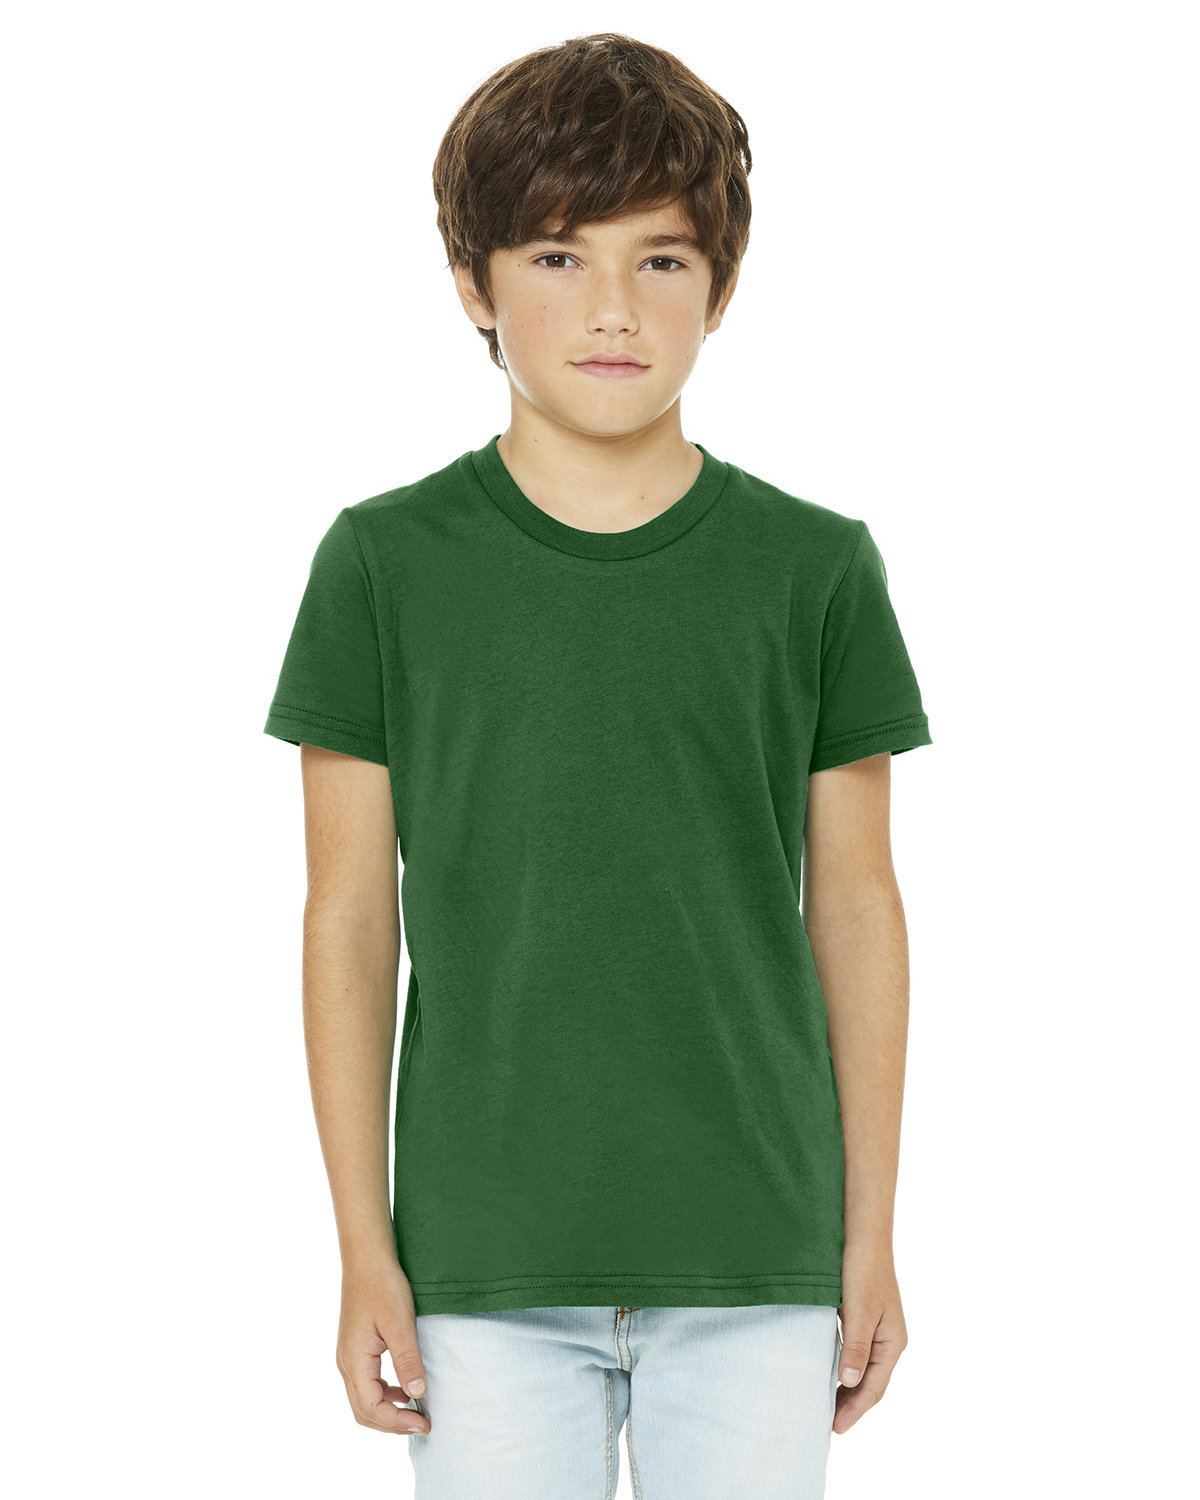 Bella + Canvas Youth Jersey T-Shirt KELLY